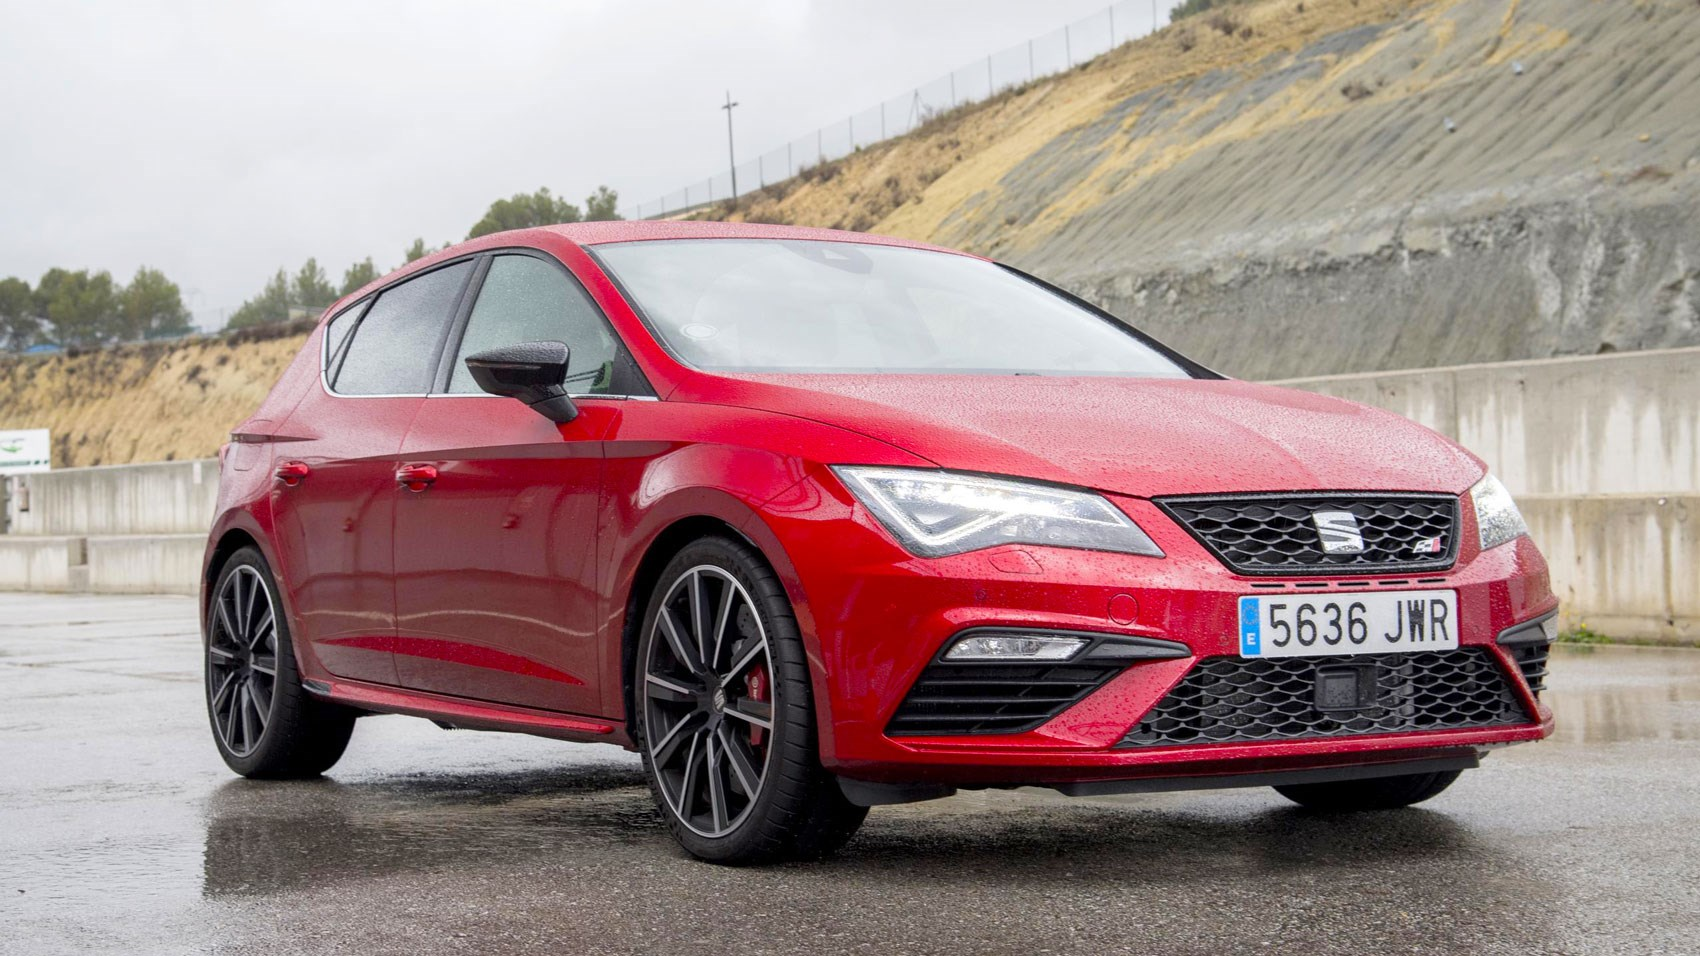 seat leon cupra 300 2017 review by car magazine. Black Bedroom Furniture Sets. Home Design Ideas